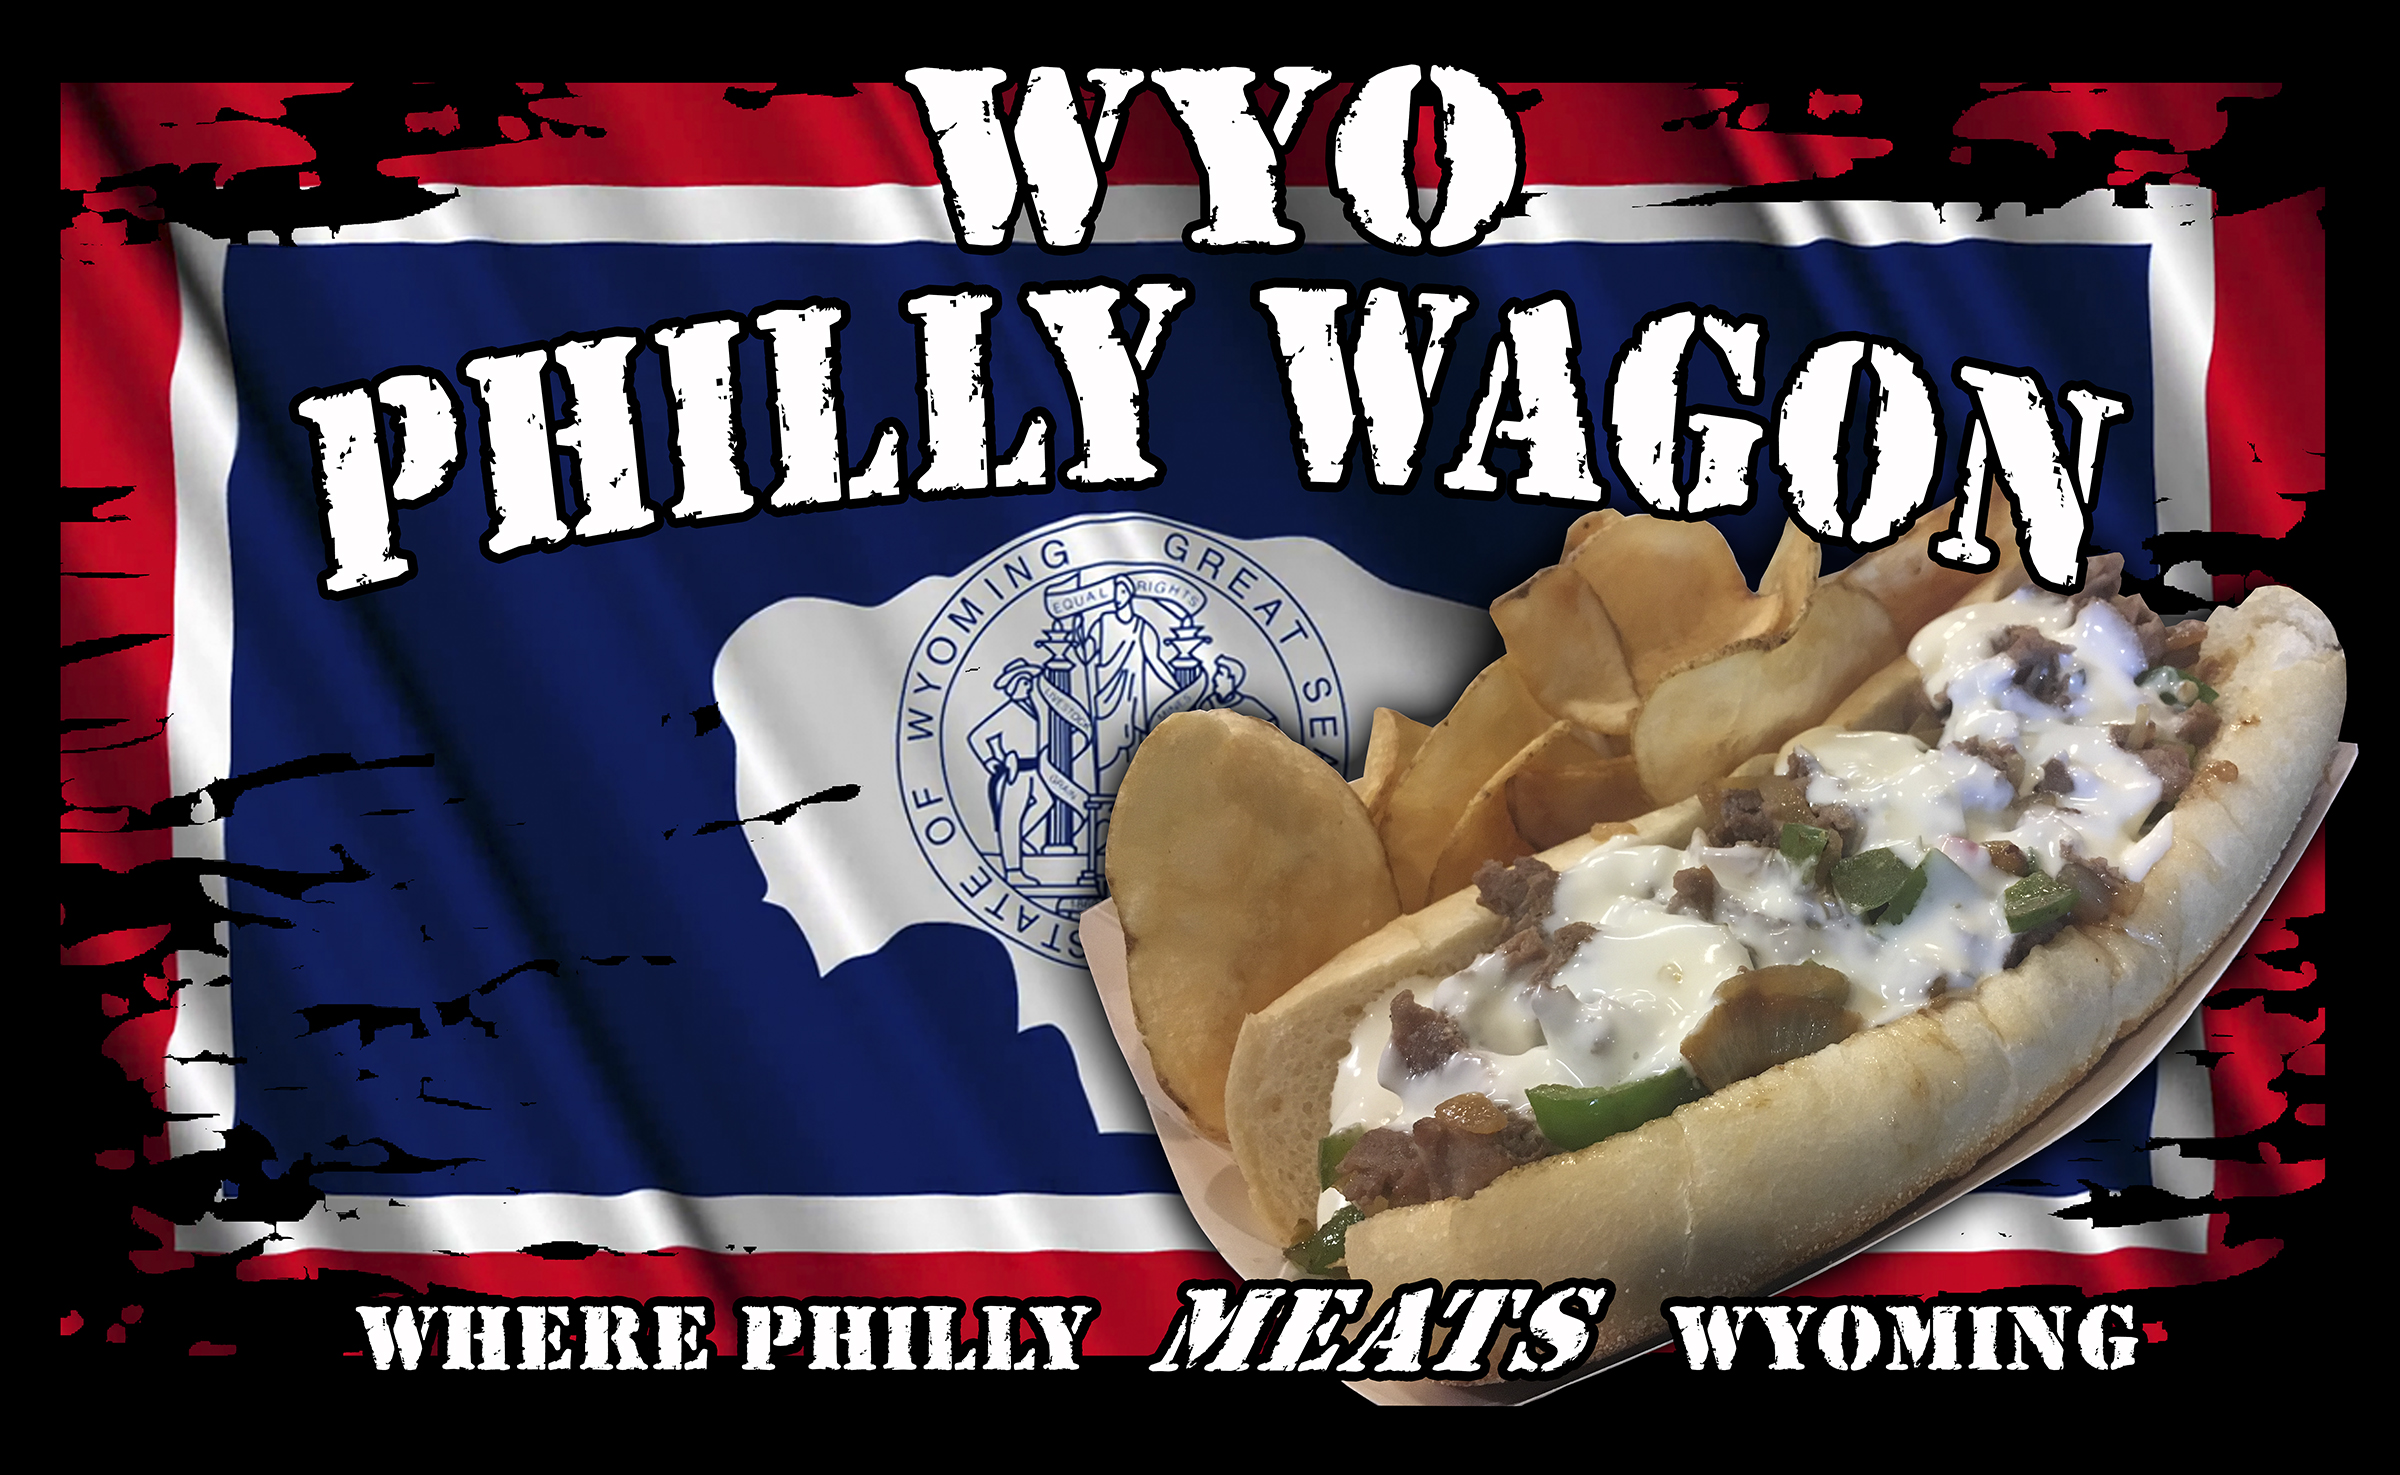 wyo philly wagon logo. Where Philly meats wyoming